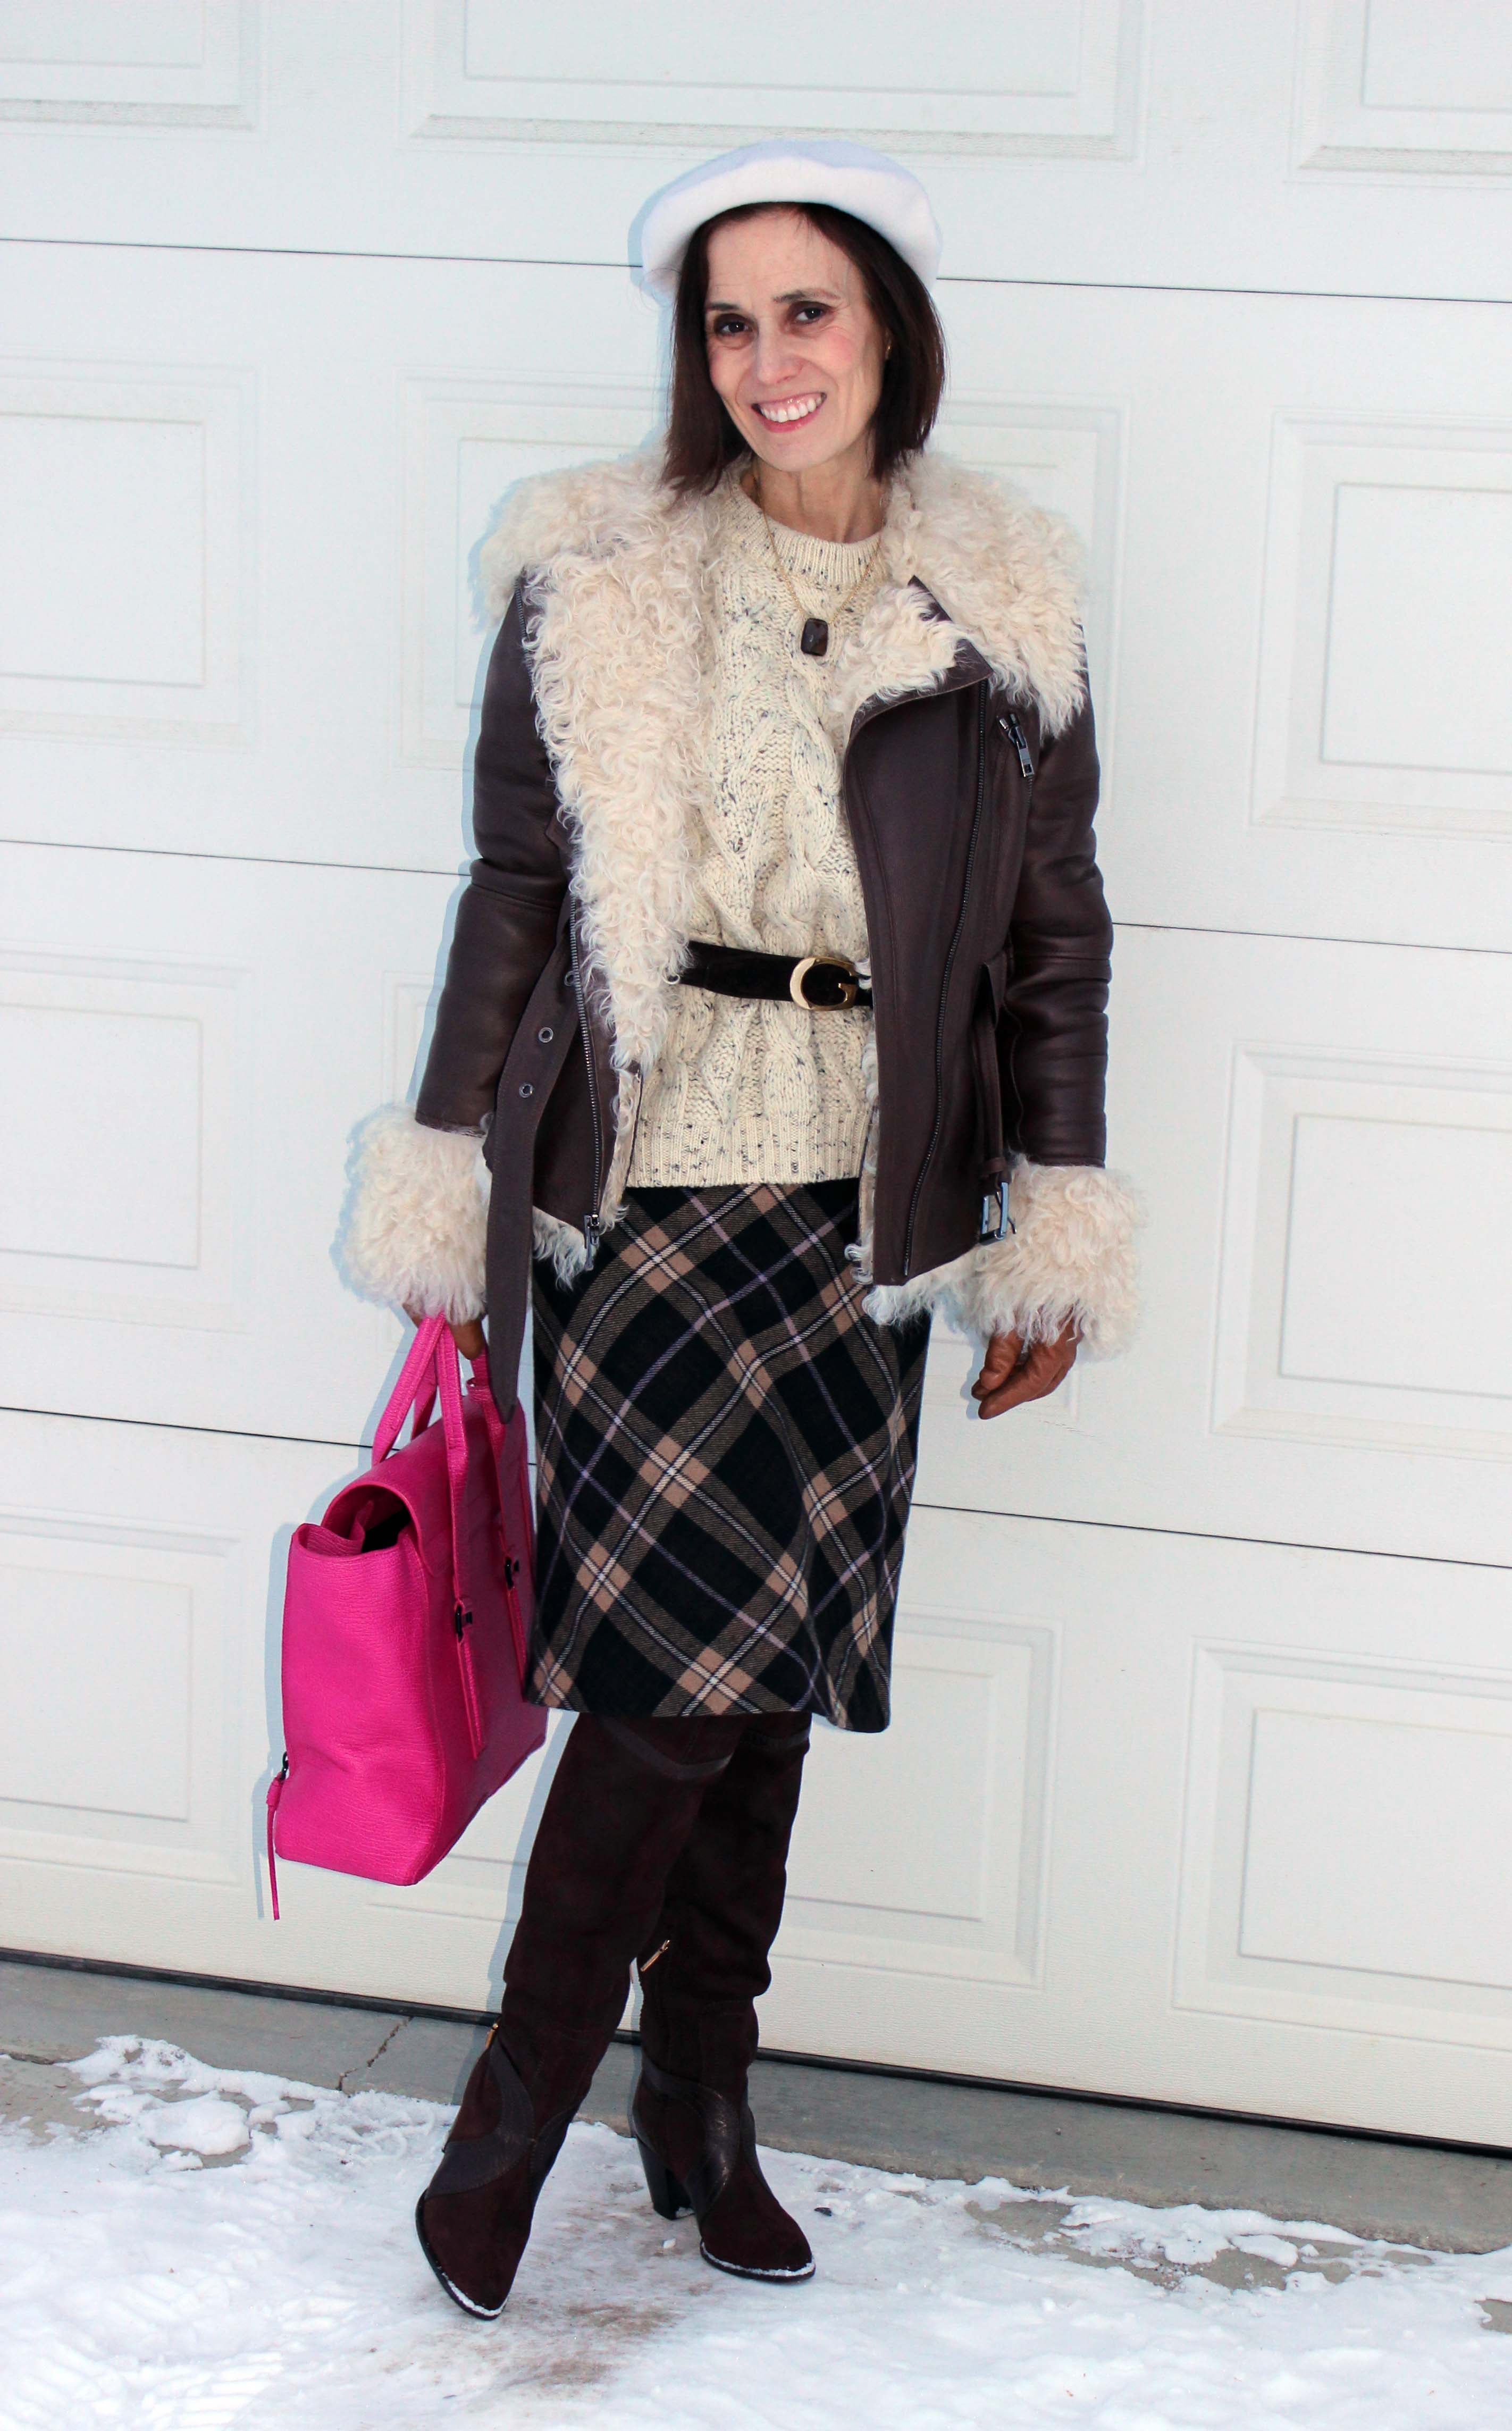 #over40fashion #fashionover50 How to style over-the-knee boots: example casual with skirt look in the weekly Ageless Style series @ High Latitude Style @ http://www.highlatitudestyle.com